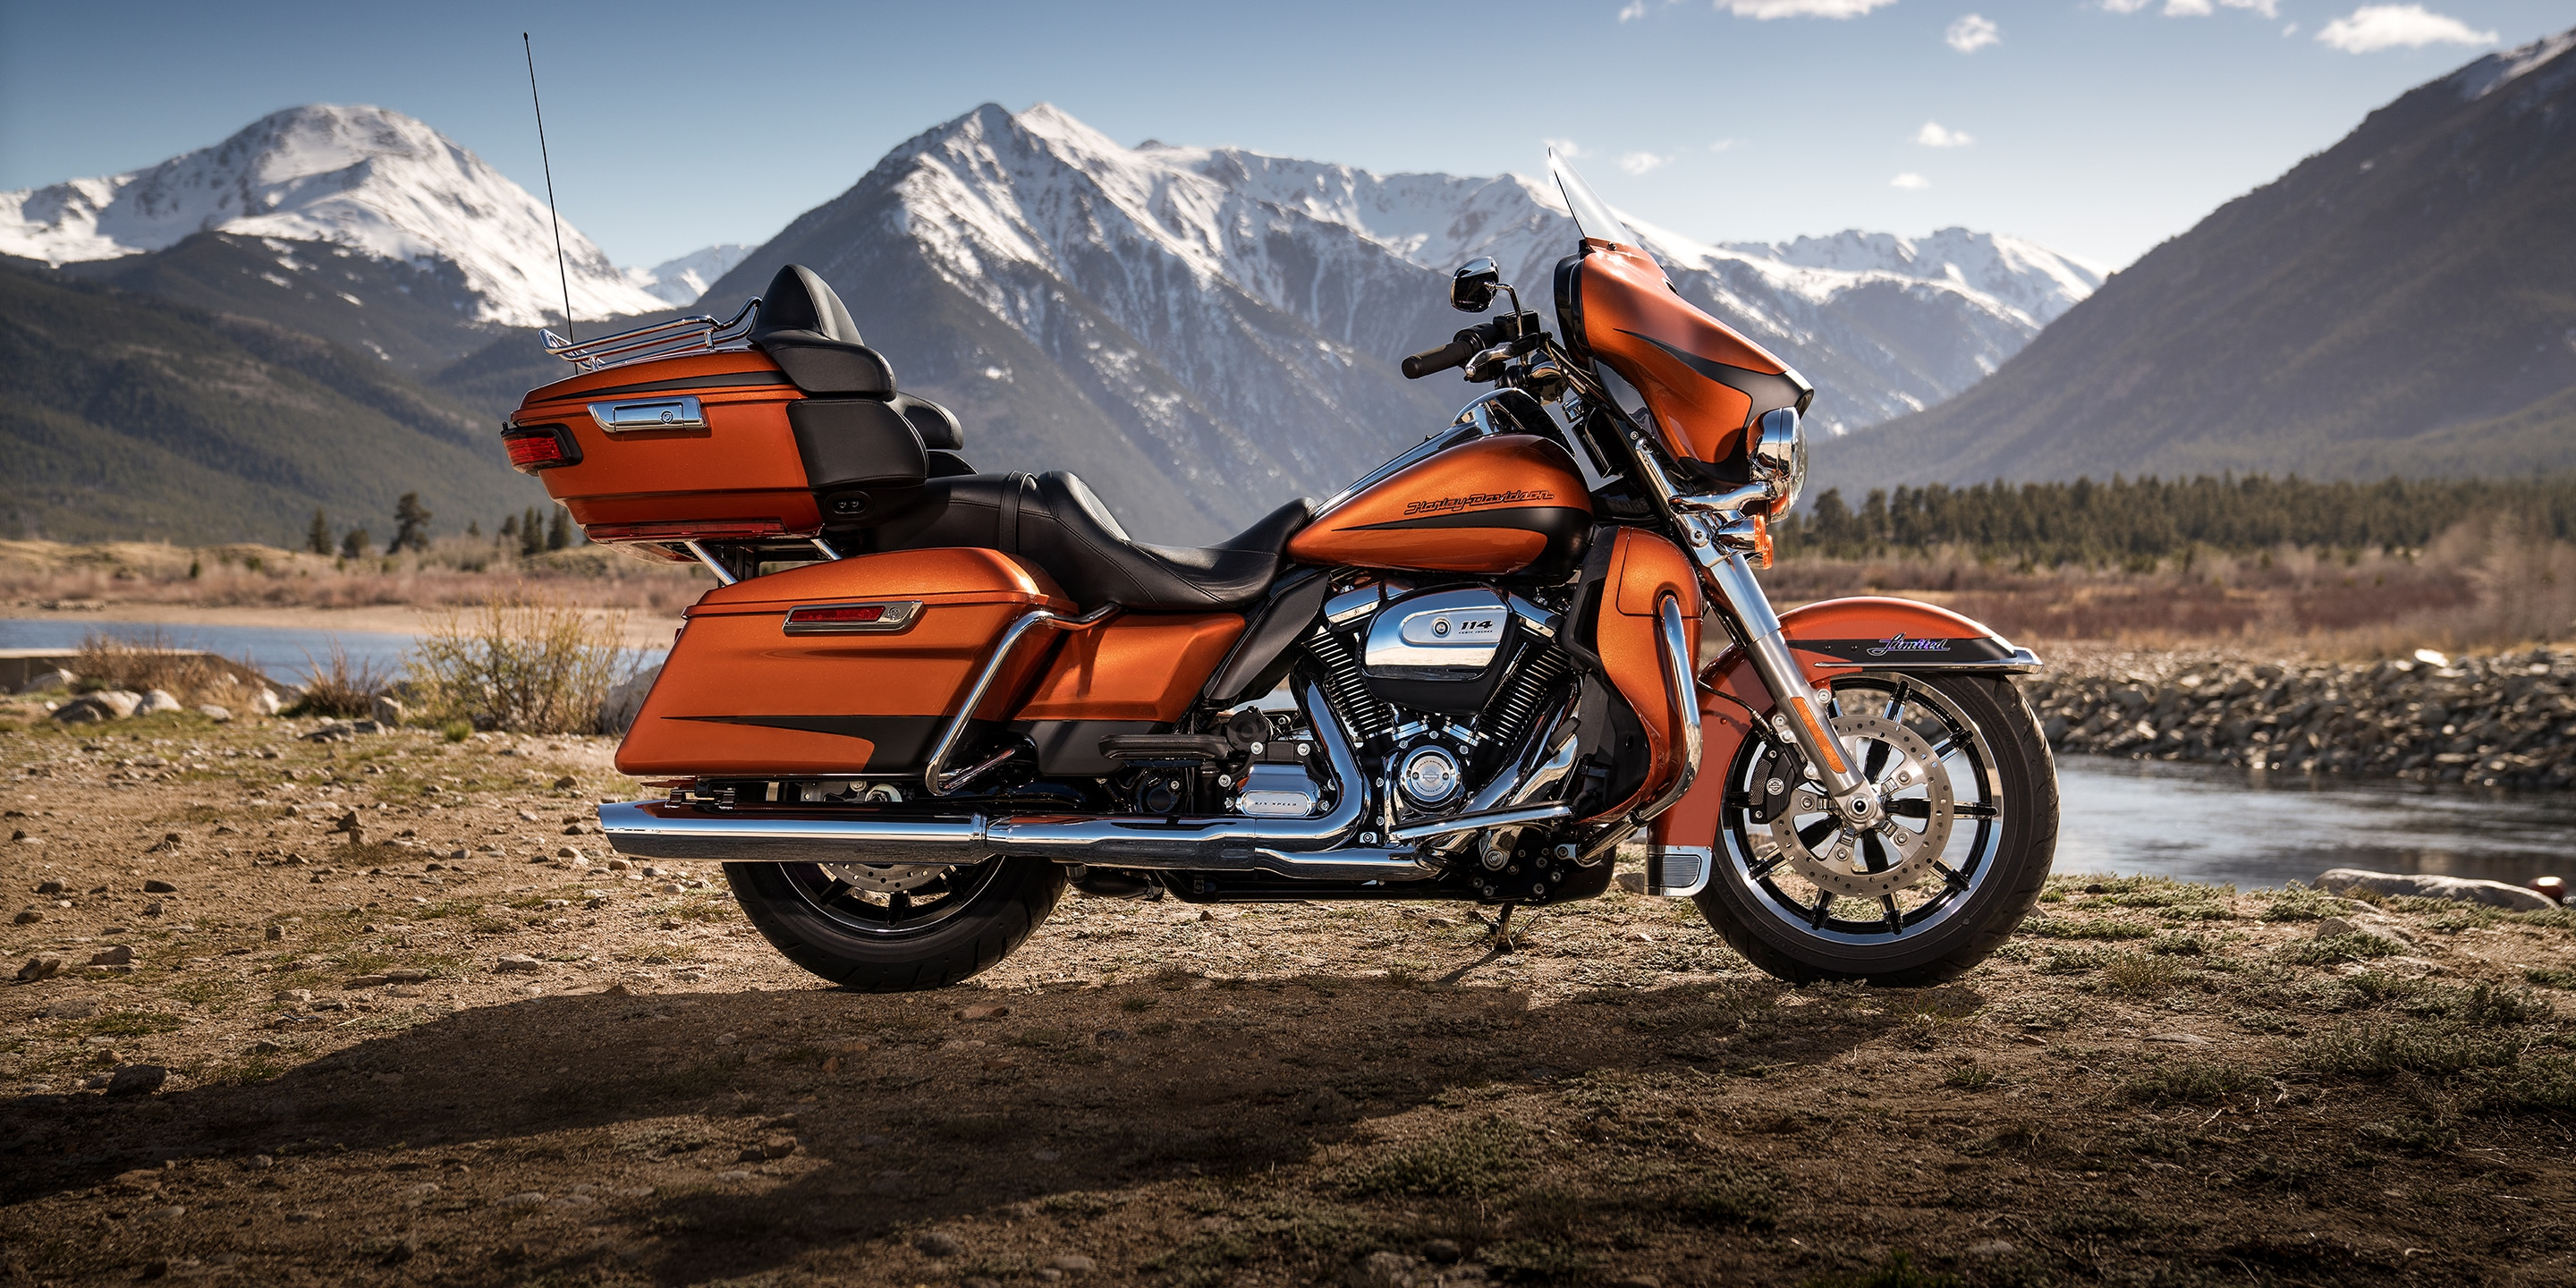 Harley Davidson Touring With Ultra Limited